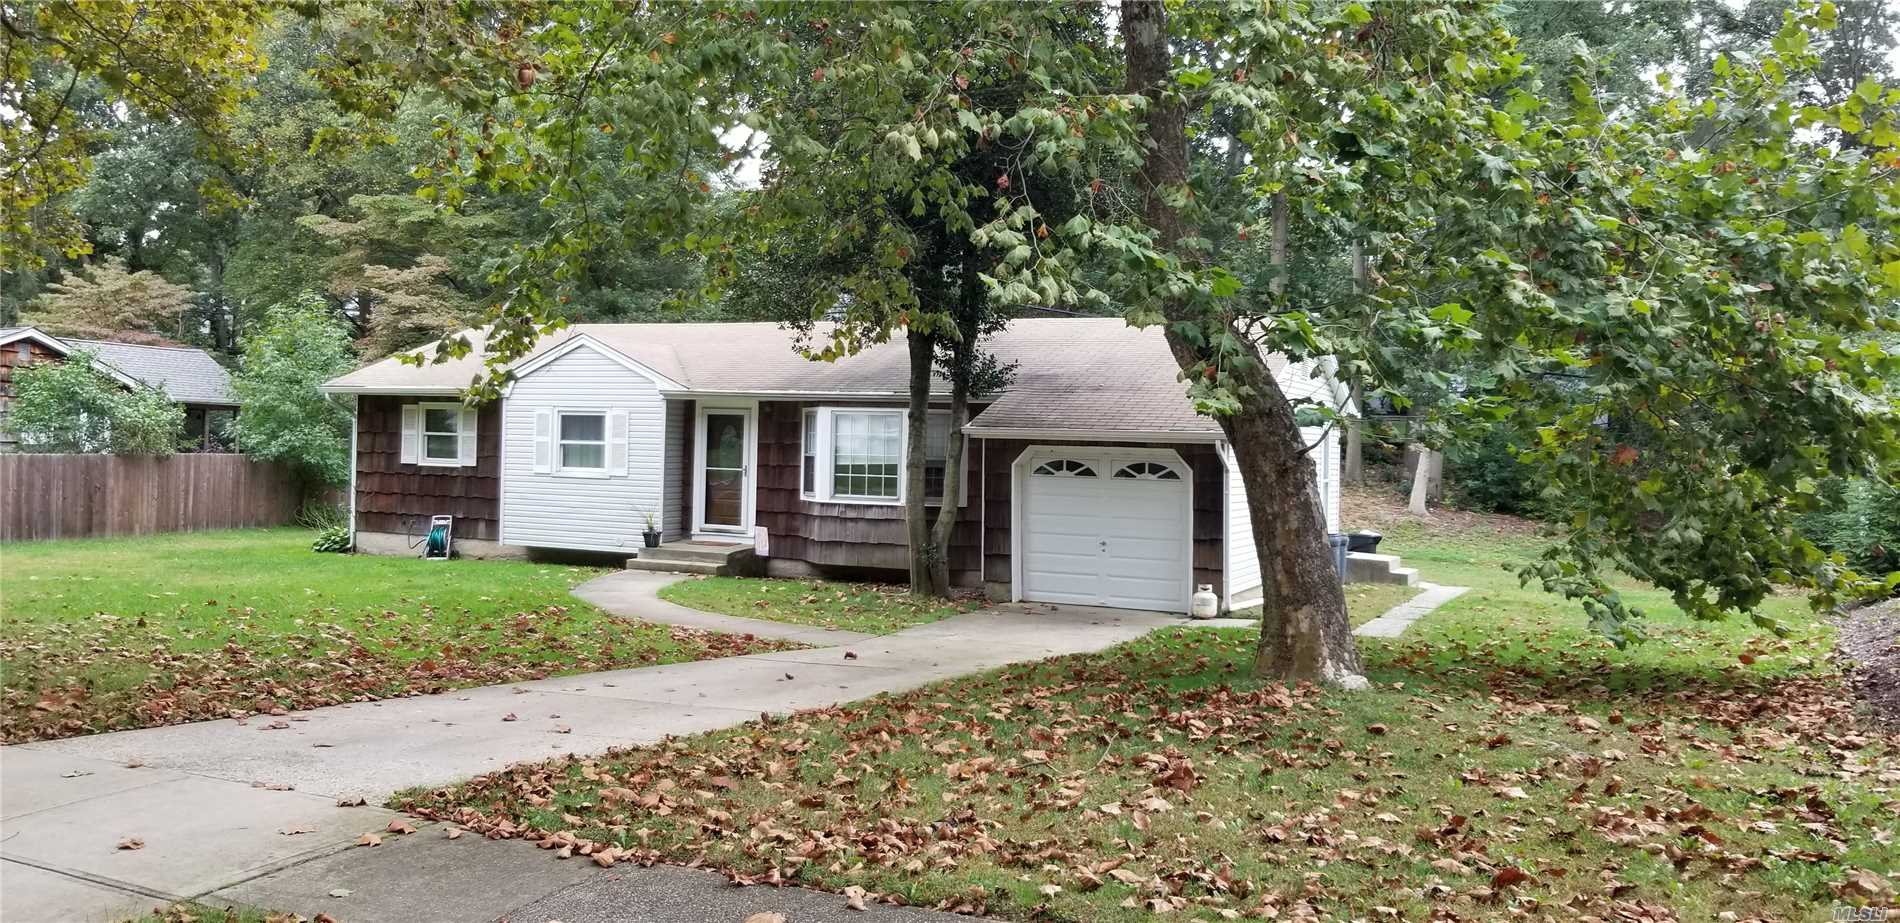 Renovated Ranch With 3 Bedrooms, Lr, Dr, Bath, Basement & Garage.